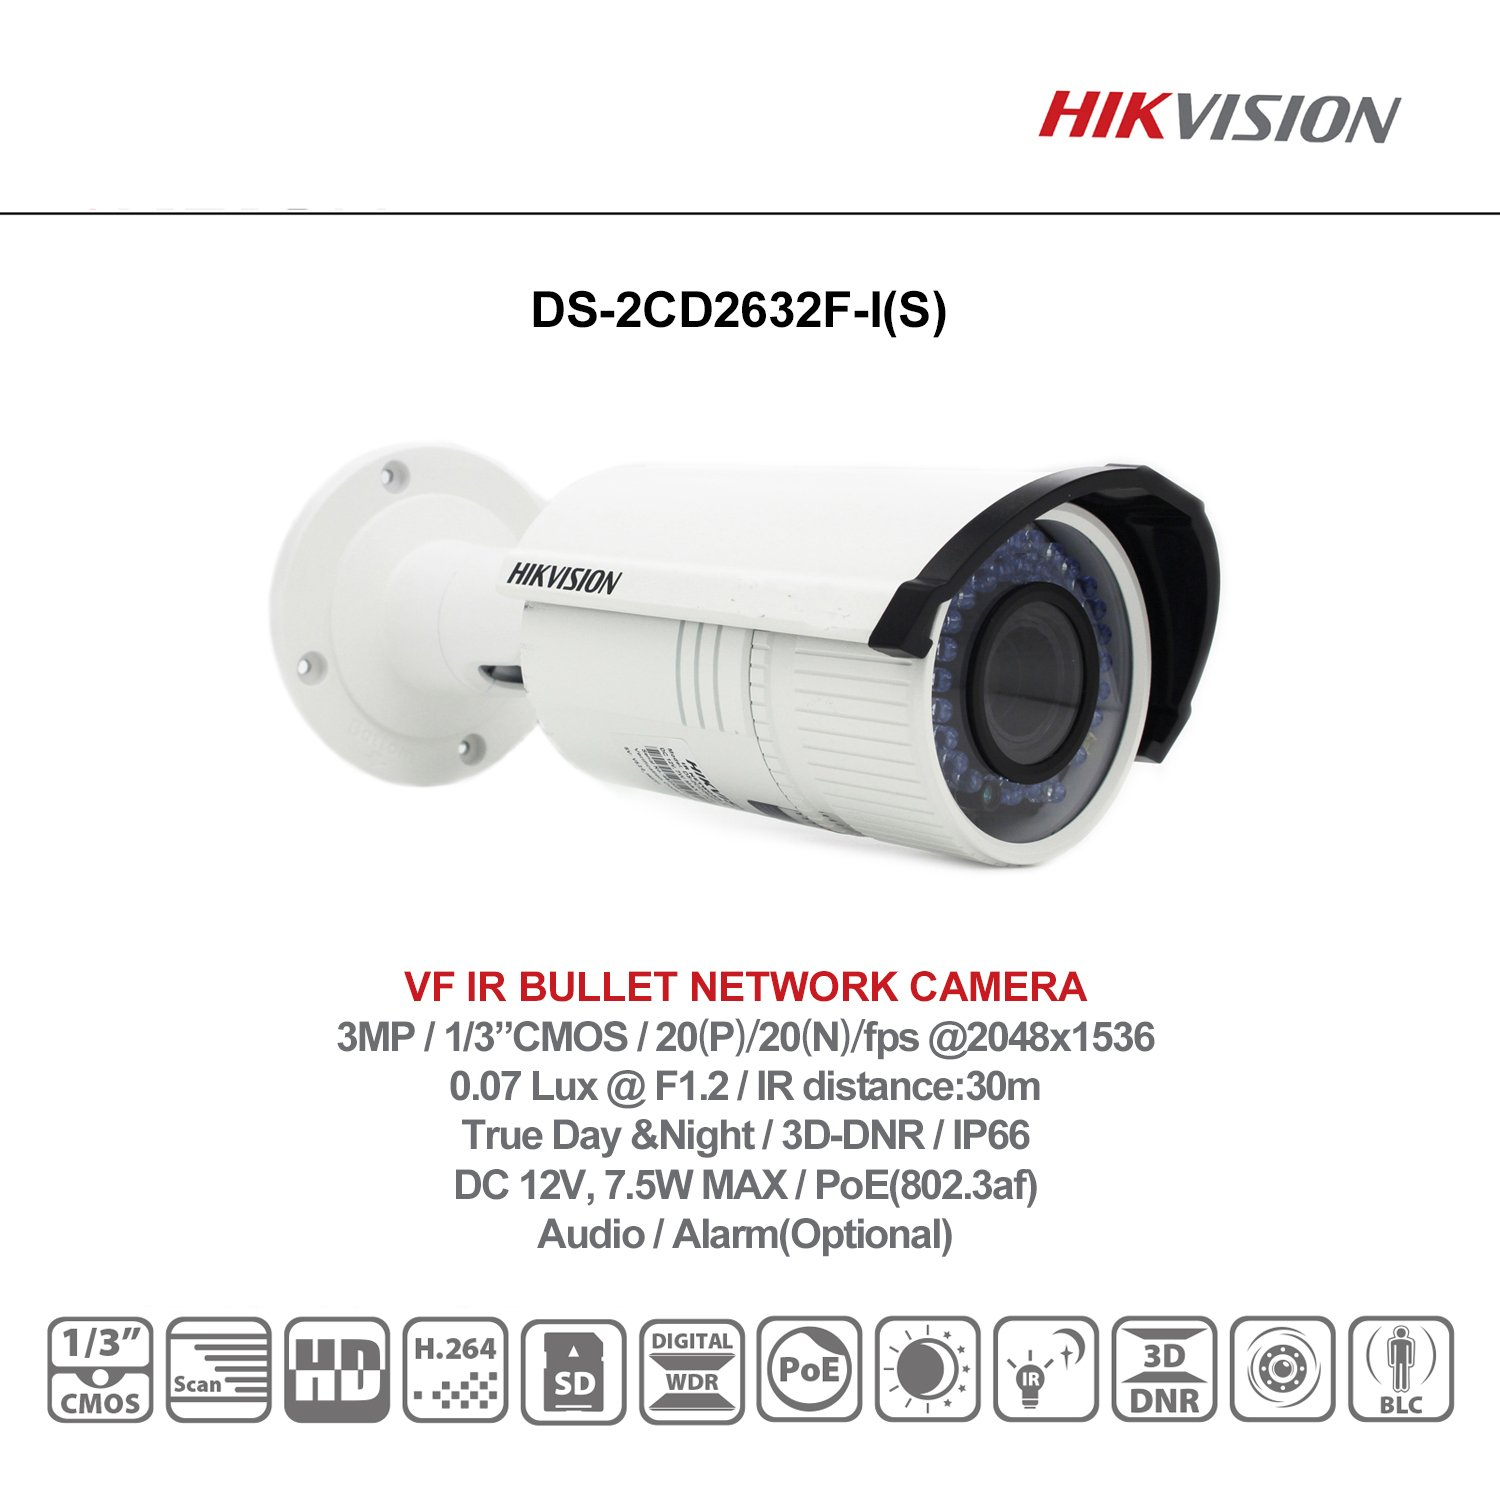 HIKVISION 3MP Verifocal IR Bullet Network IP Camera 2.8-12mm DS-2CD2632F-IS Camera